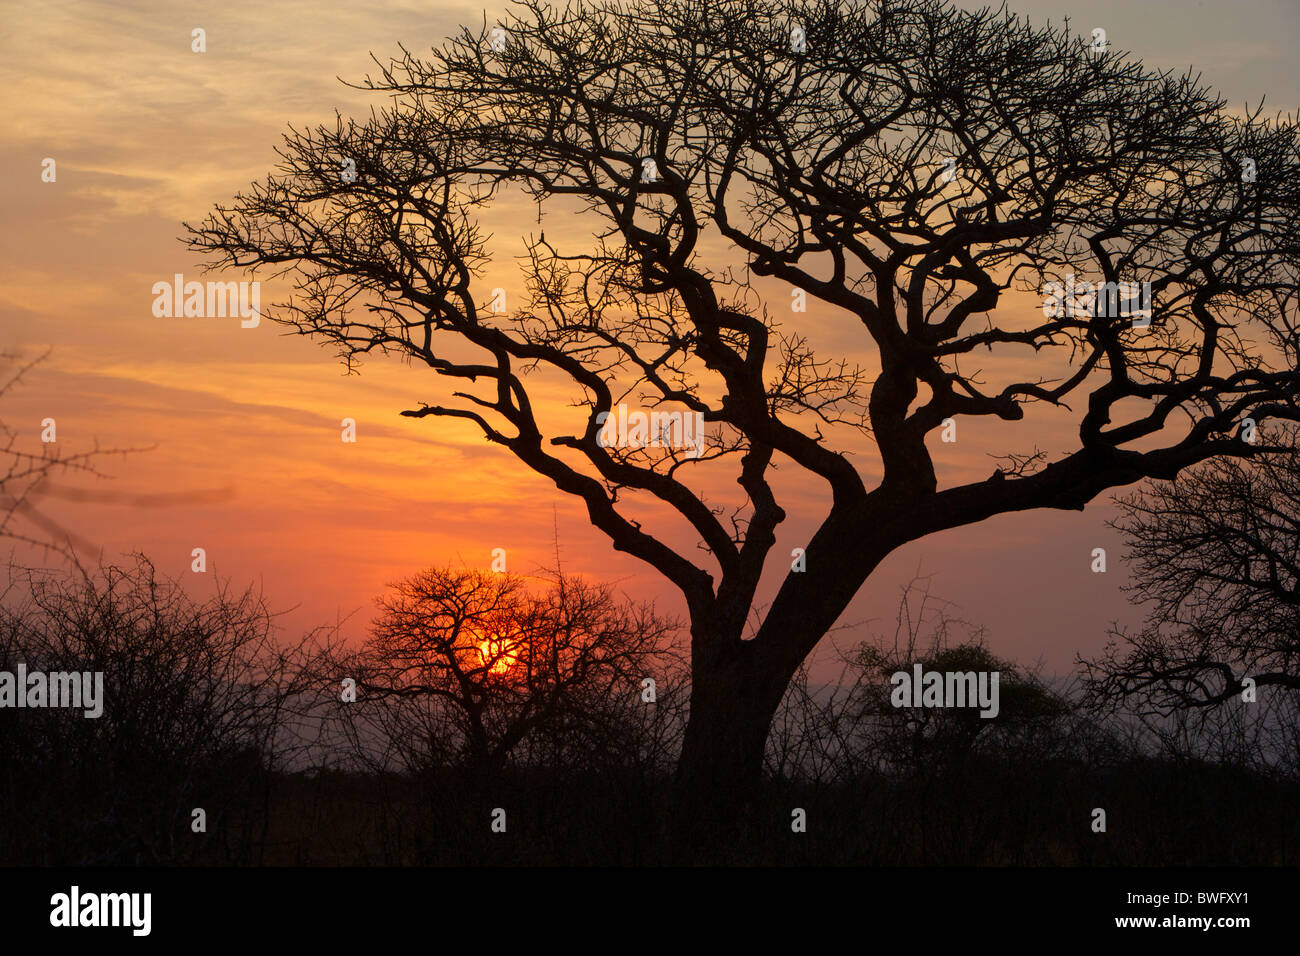 A silhouette of a tree at sunset. Isimangaliso, Kwazulu-Natal, South Africa - Stock Image